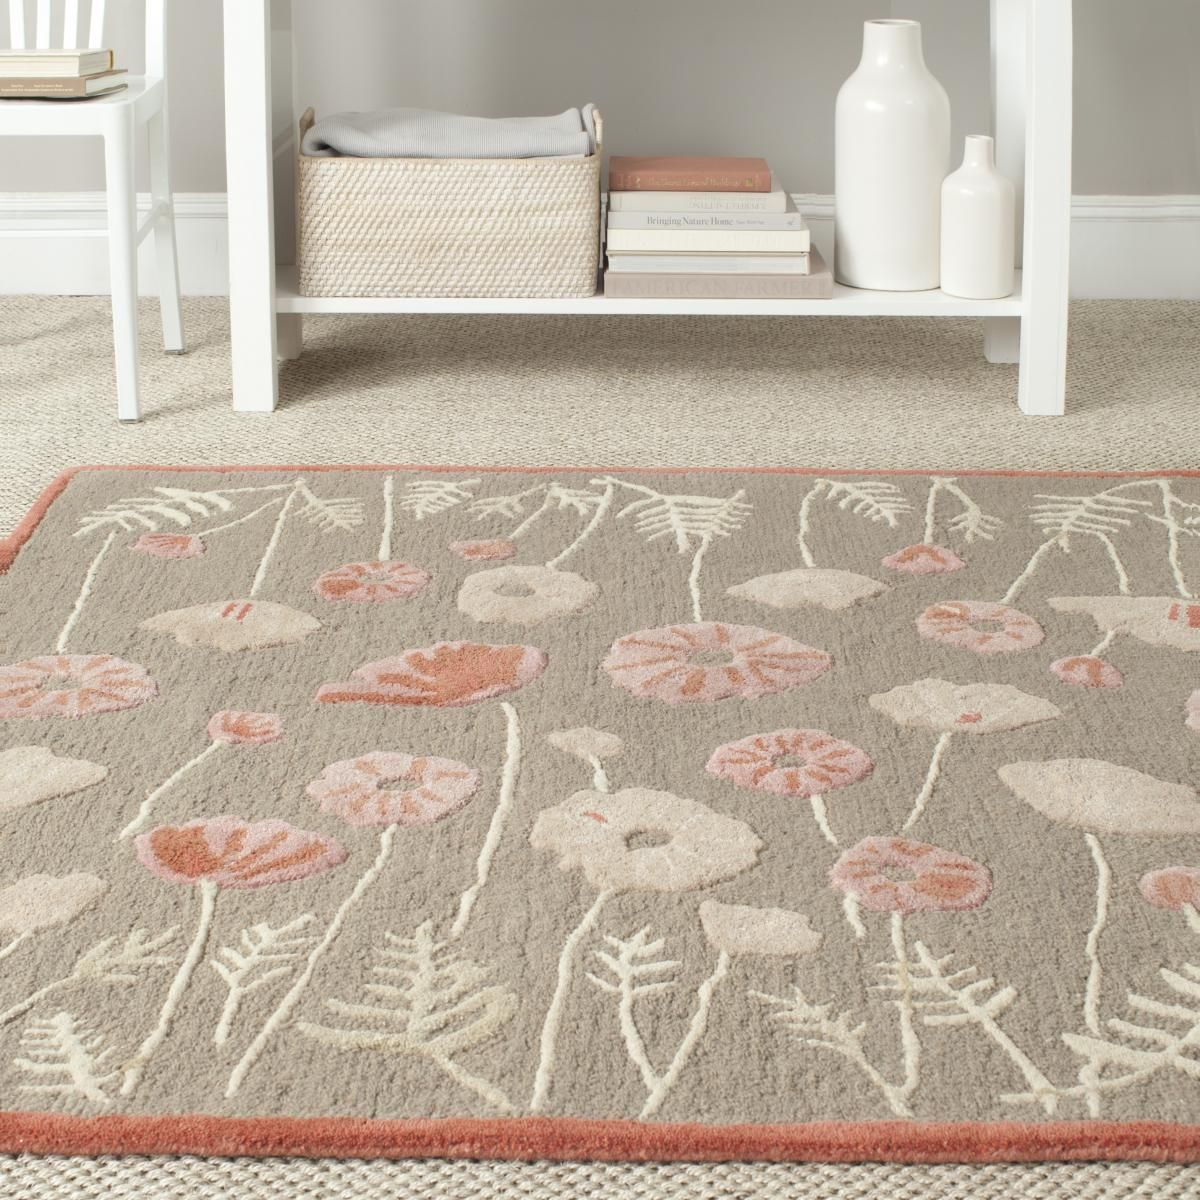 Rug Msr3627b Poppy Glossary Martha Stewart Rug Collection Color Cayenne Red Red Rugs Floral Area Rugs Rugs